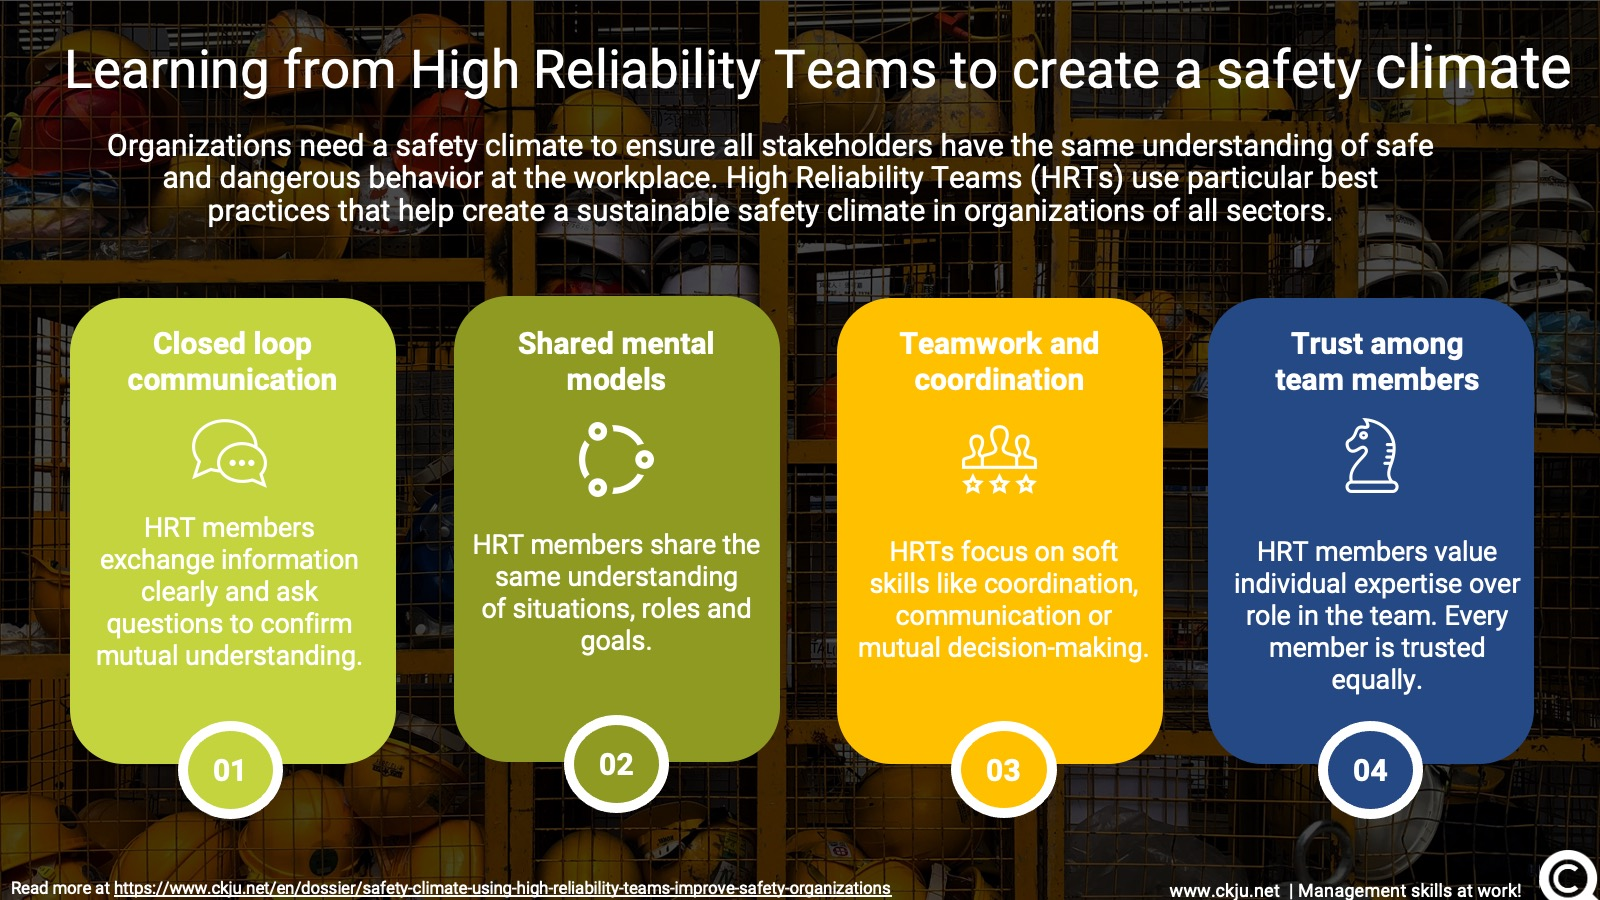 Learning from High Reliability Teams to create a safety climate